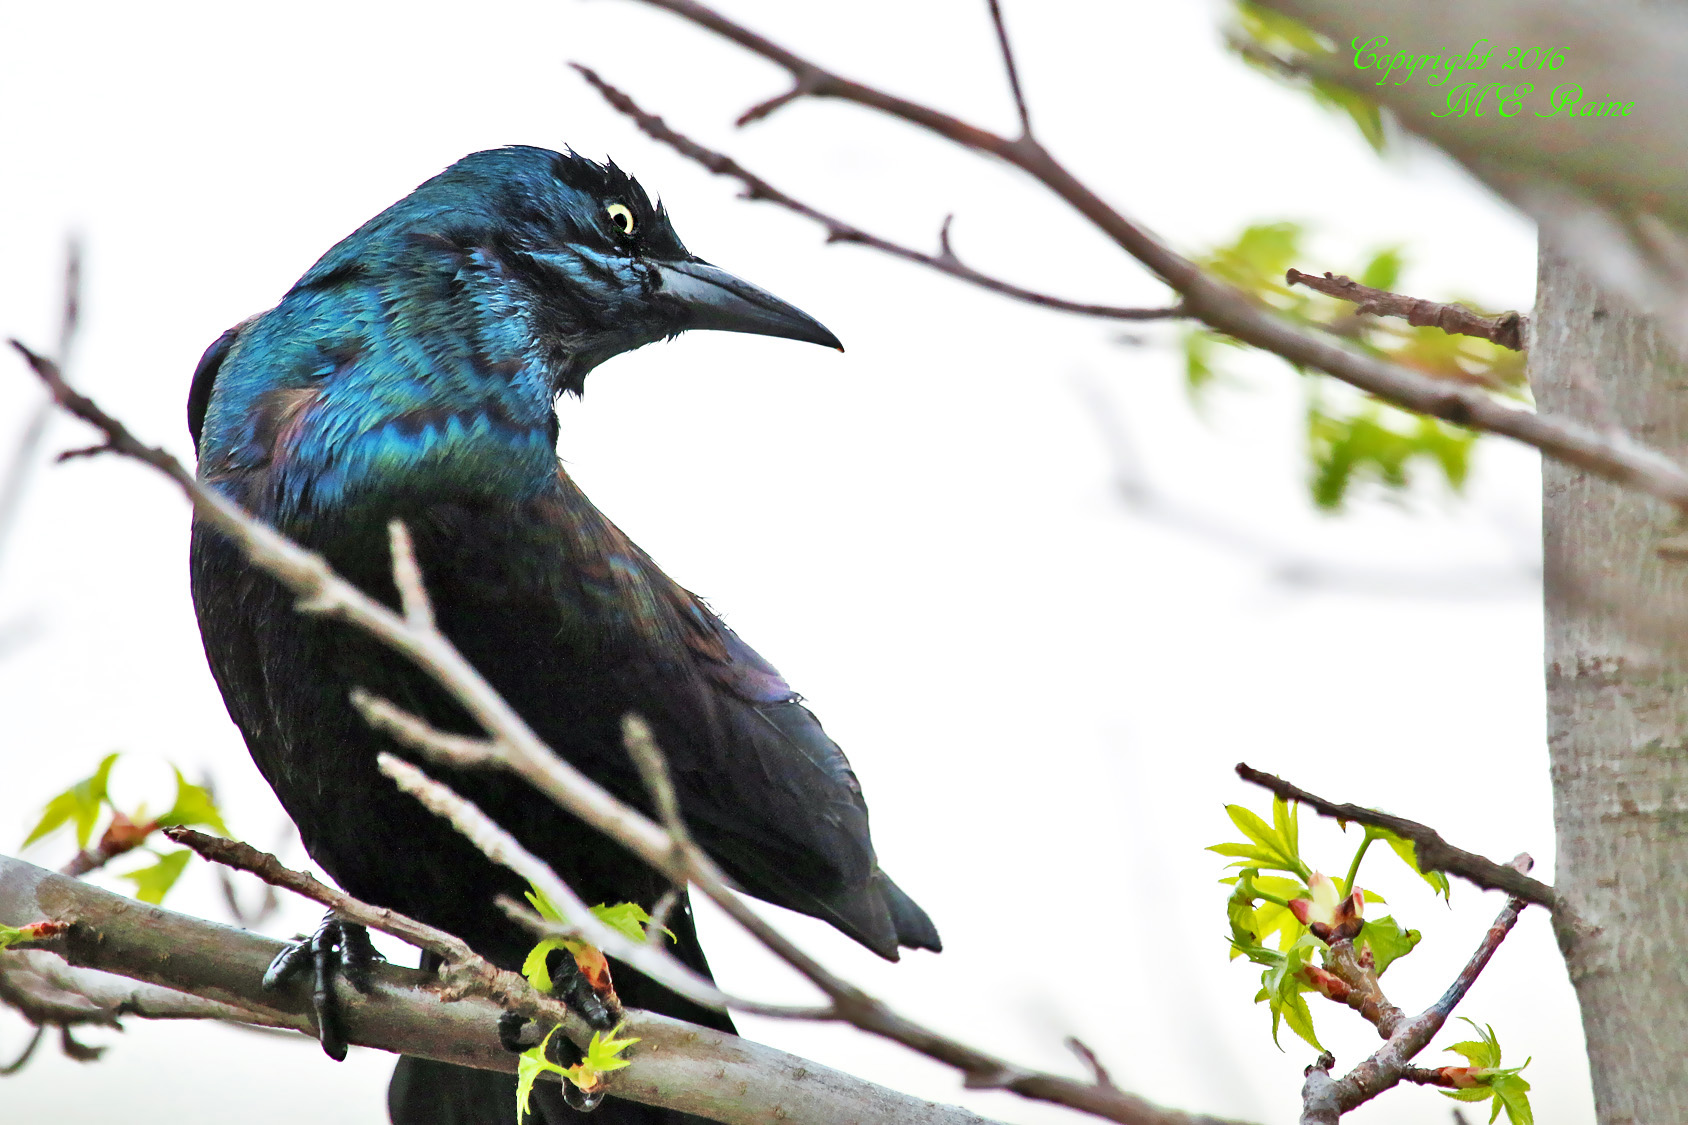 Grackle Common 009b2f MCM Mdwlnds NJ Drying Off 042516 OK FLICKR